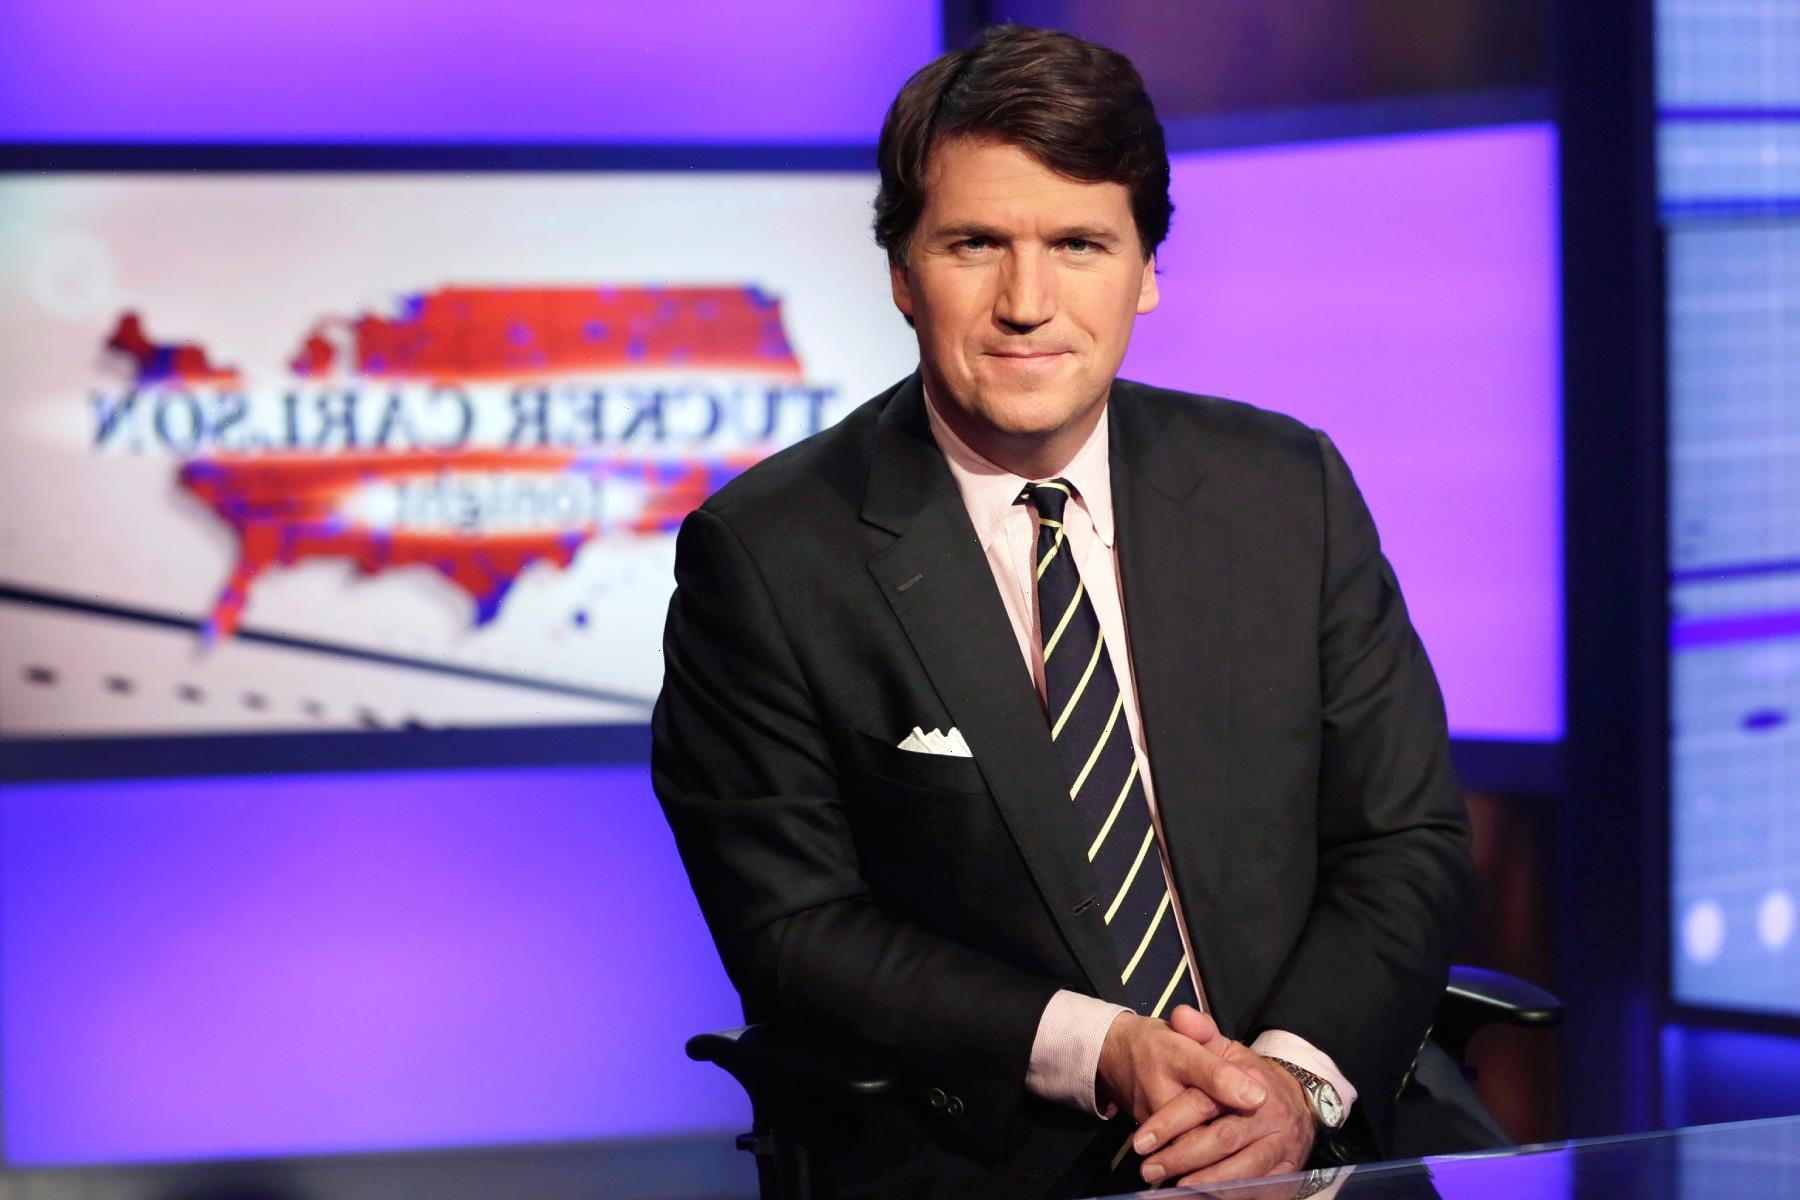 Tucker Carlson's Most Deranged Moment Yet? Special to Air Suggesting Jan. 6 a 'False Flag'